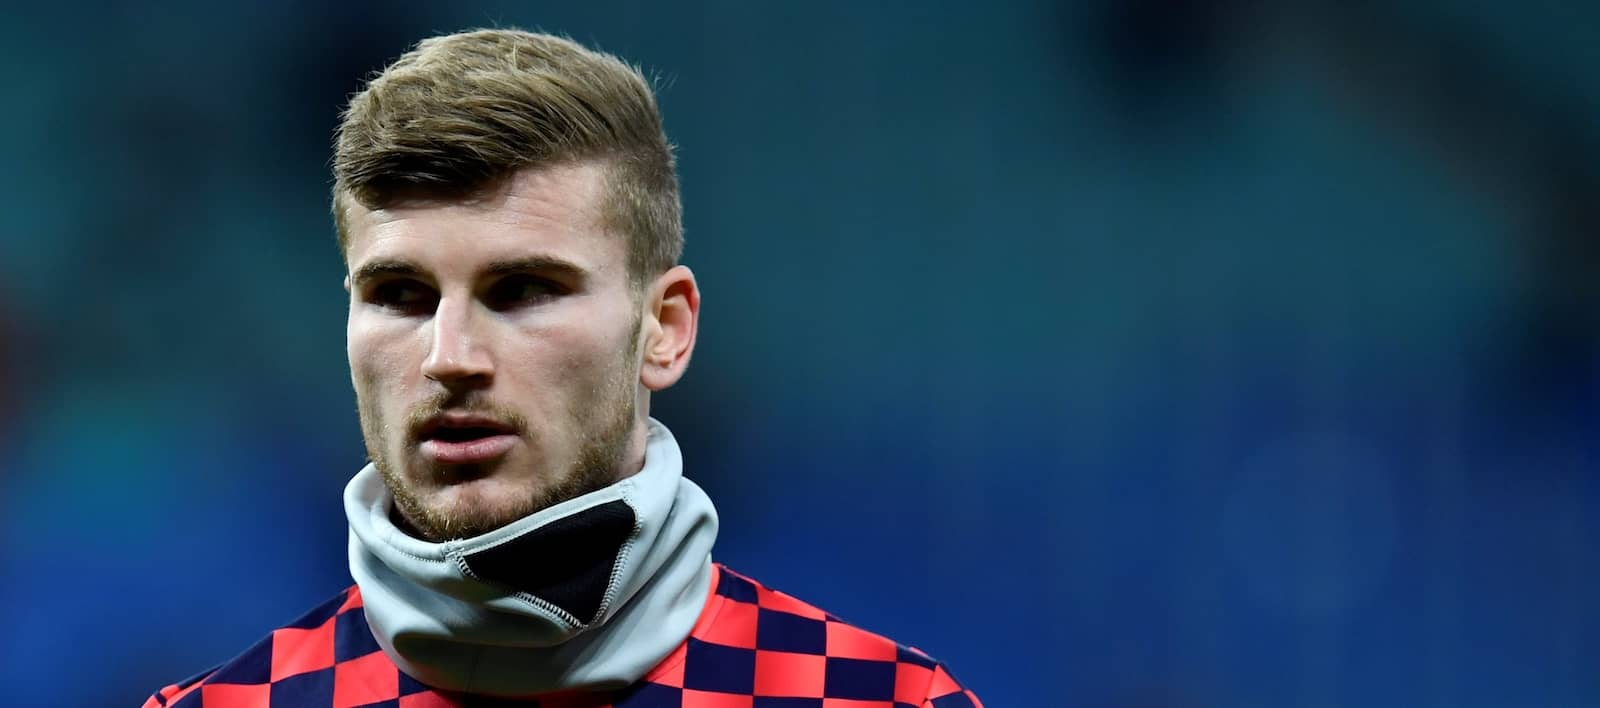 Timo Werner to Chelsea leaves Manchester United with open field in transfer market